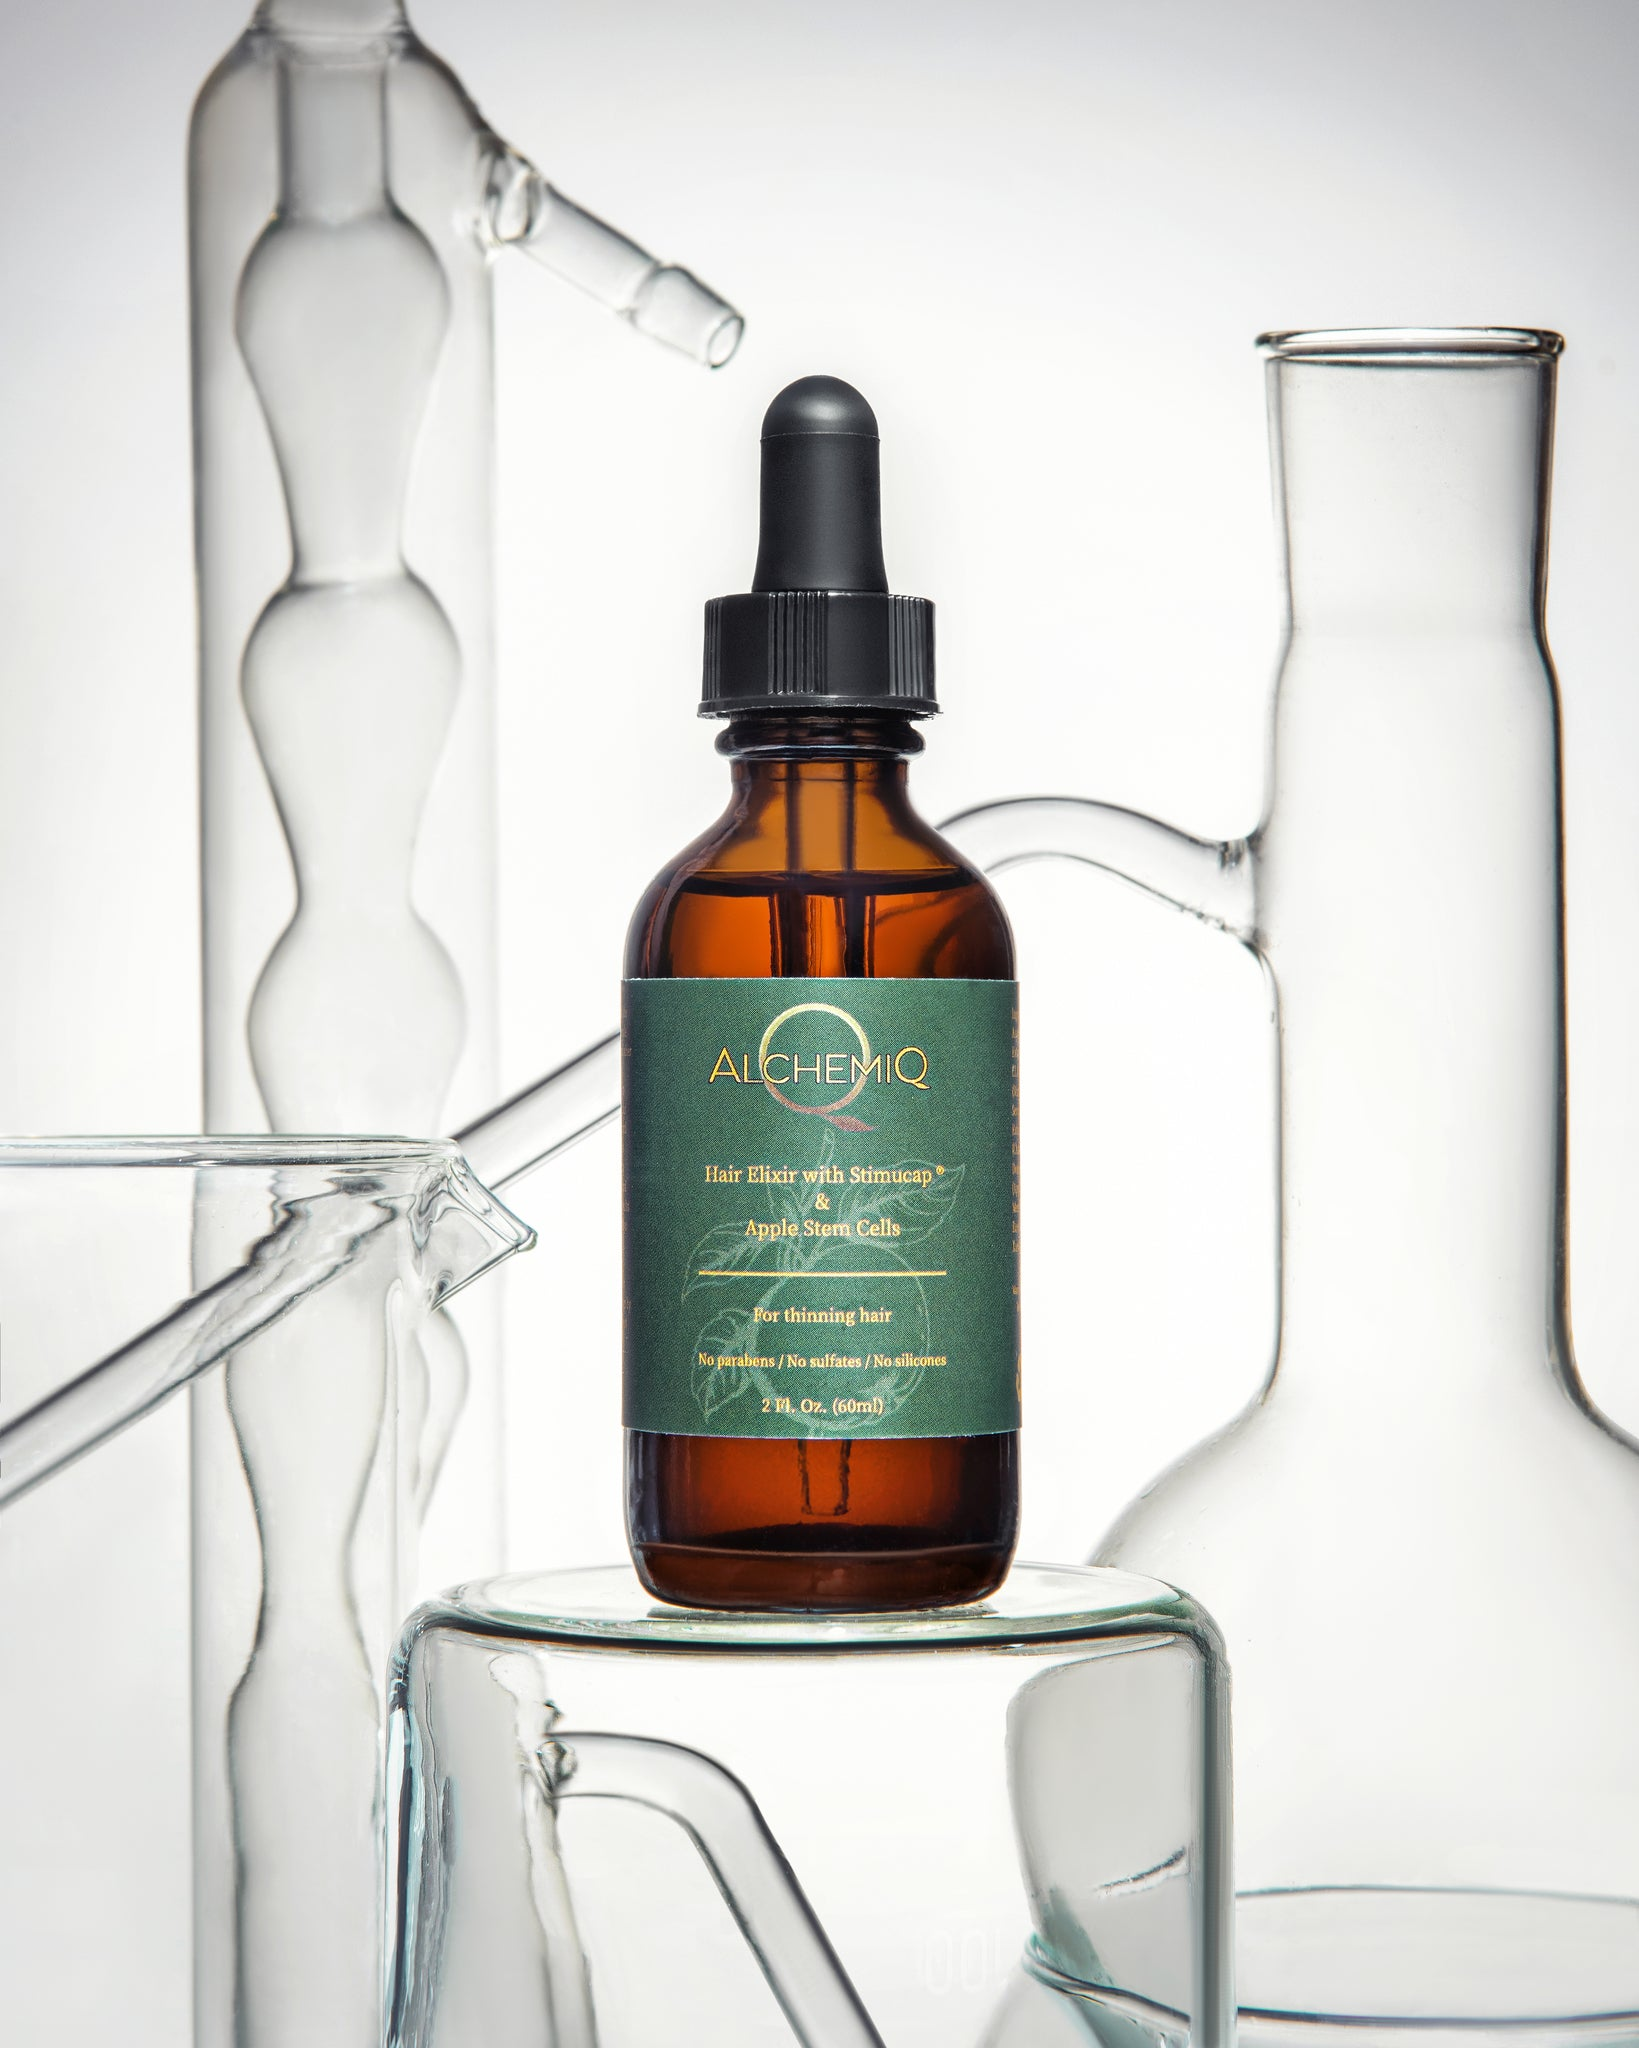 HAIR ELIXIR WITH STIMUCAP® & APPLE STEM CELLS - AlchemiQ Cosmetics